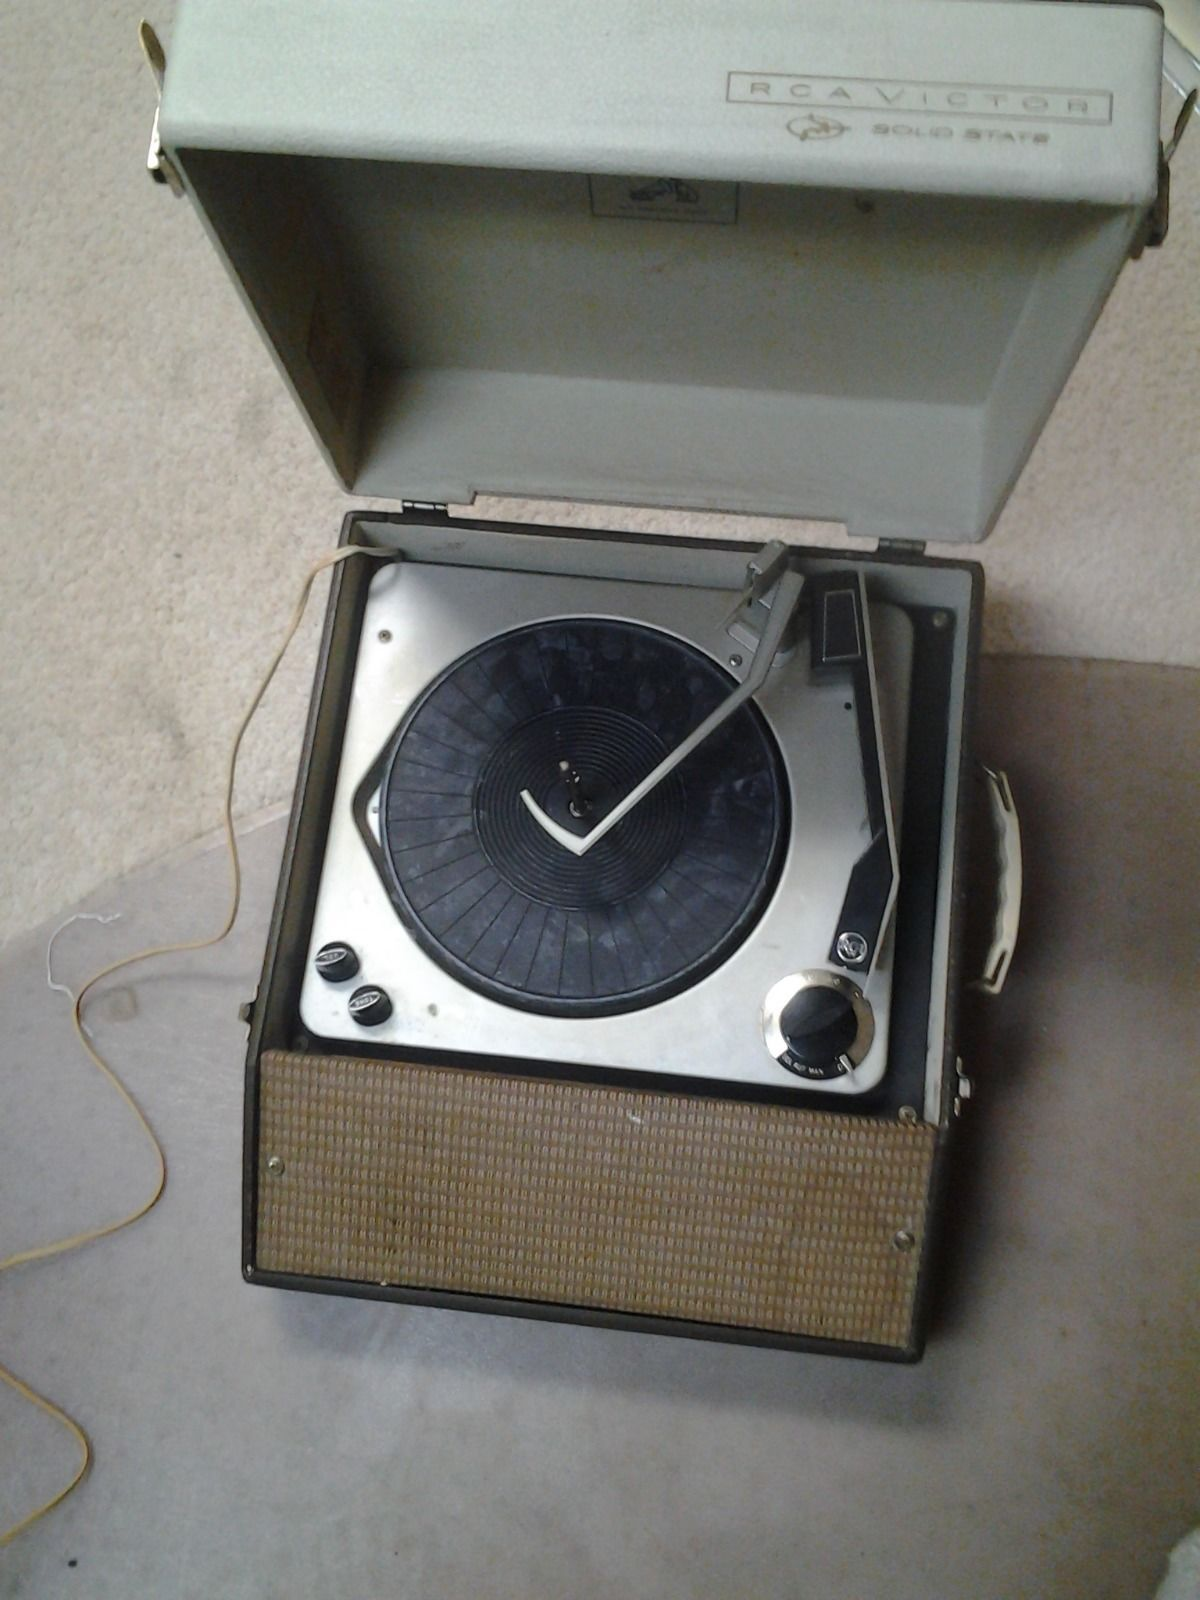 Vintage Rca Victor Solid State Portable Record Player